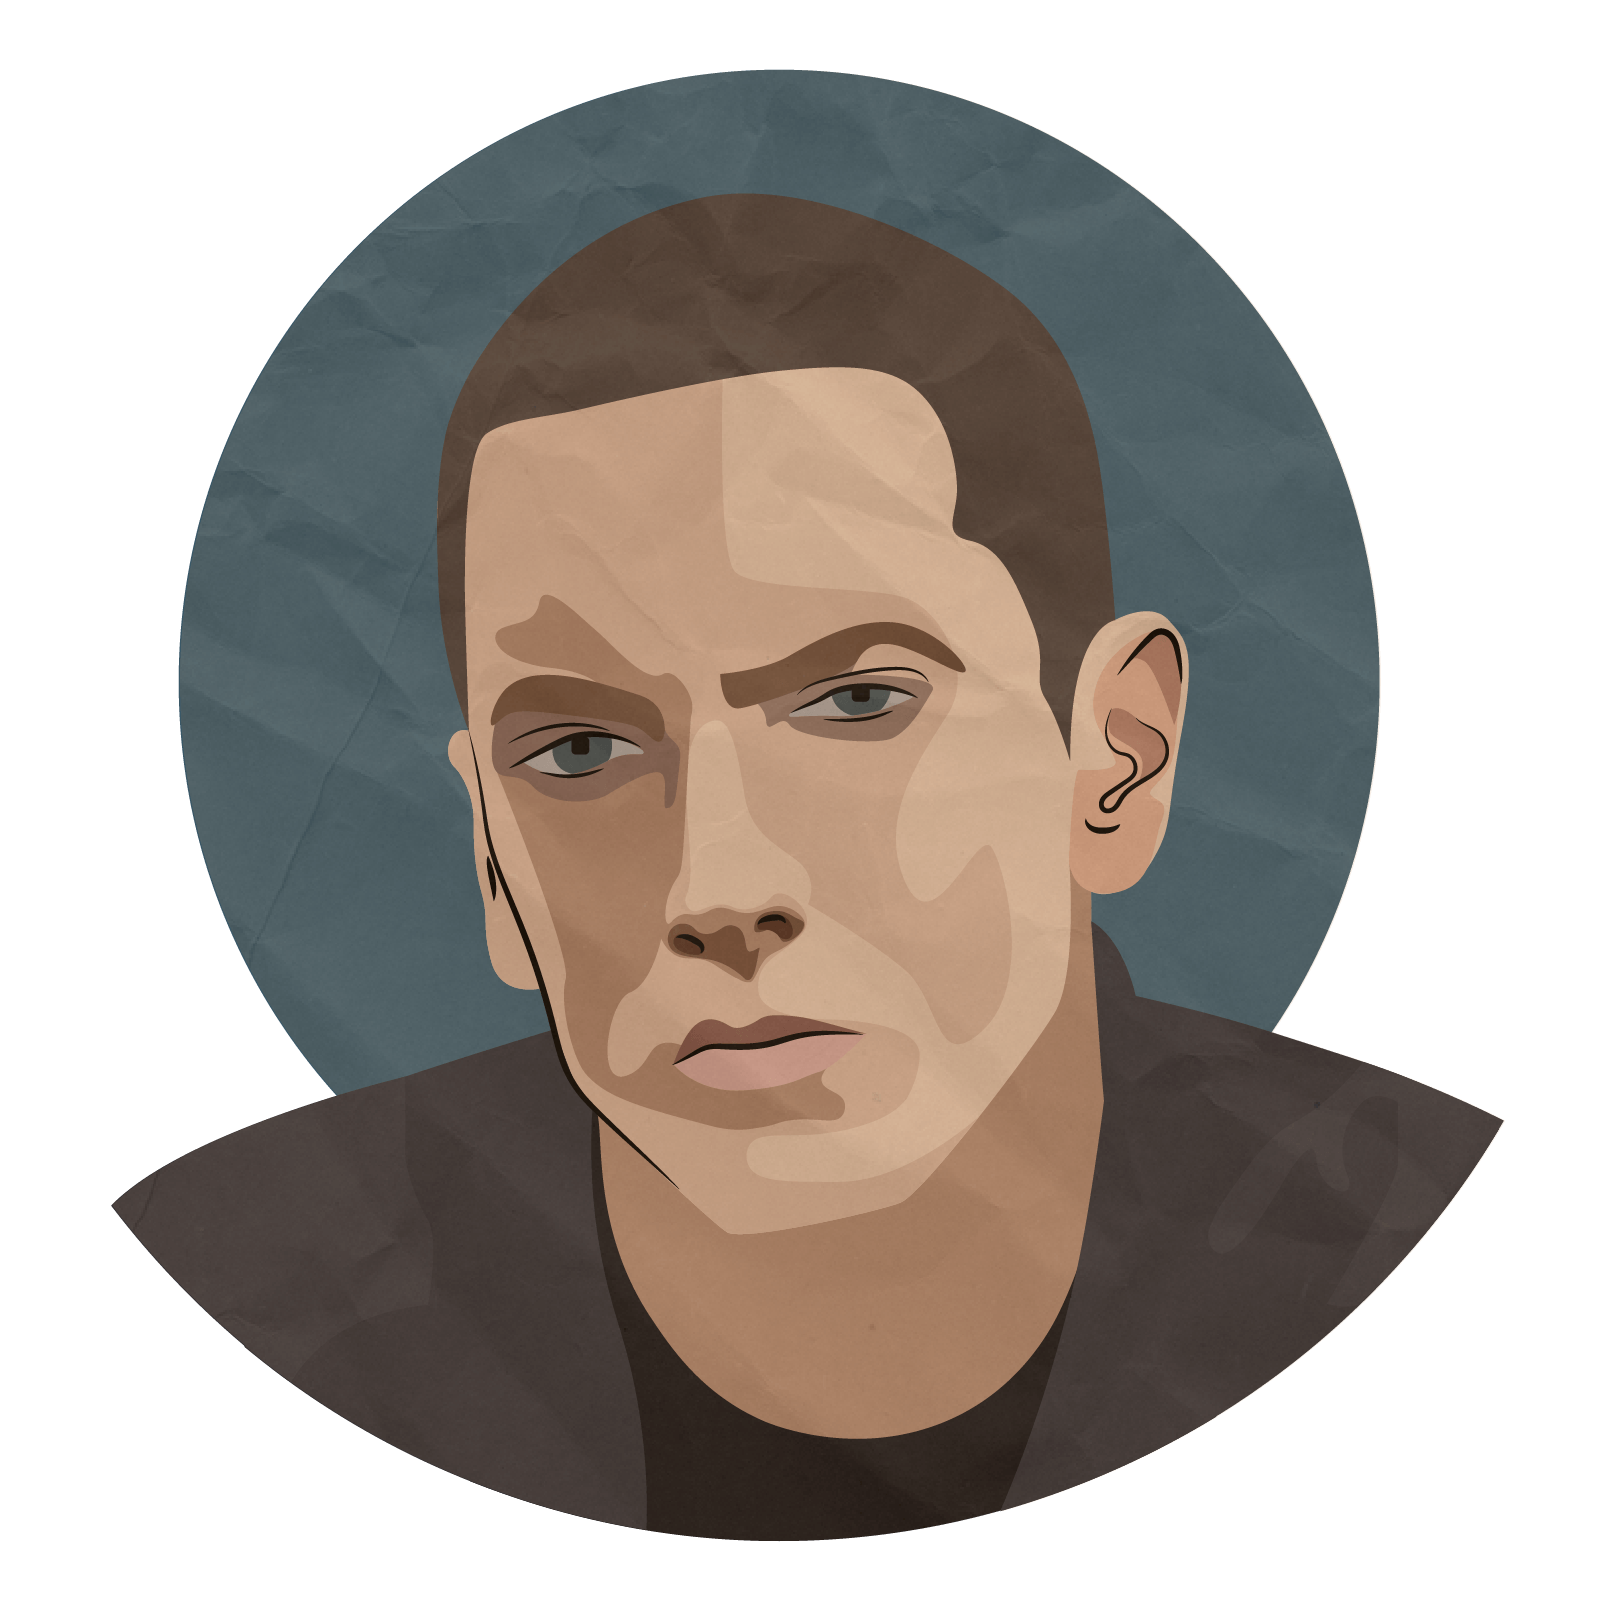 Eminem face png. Portrait work of art